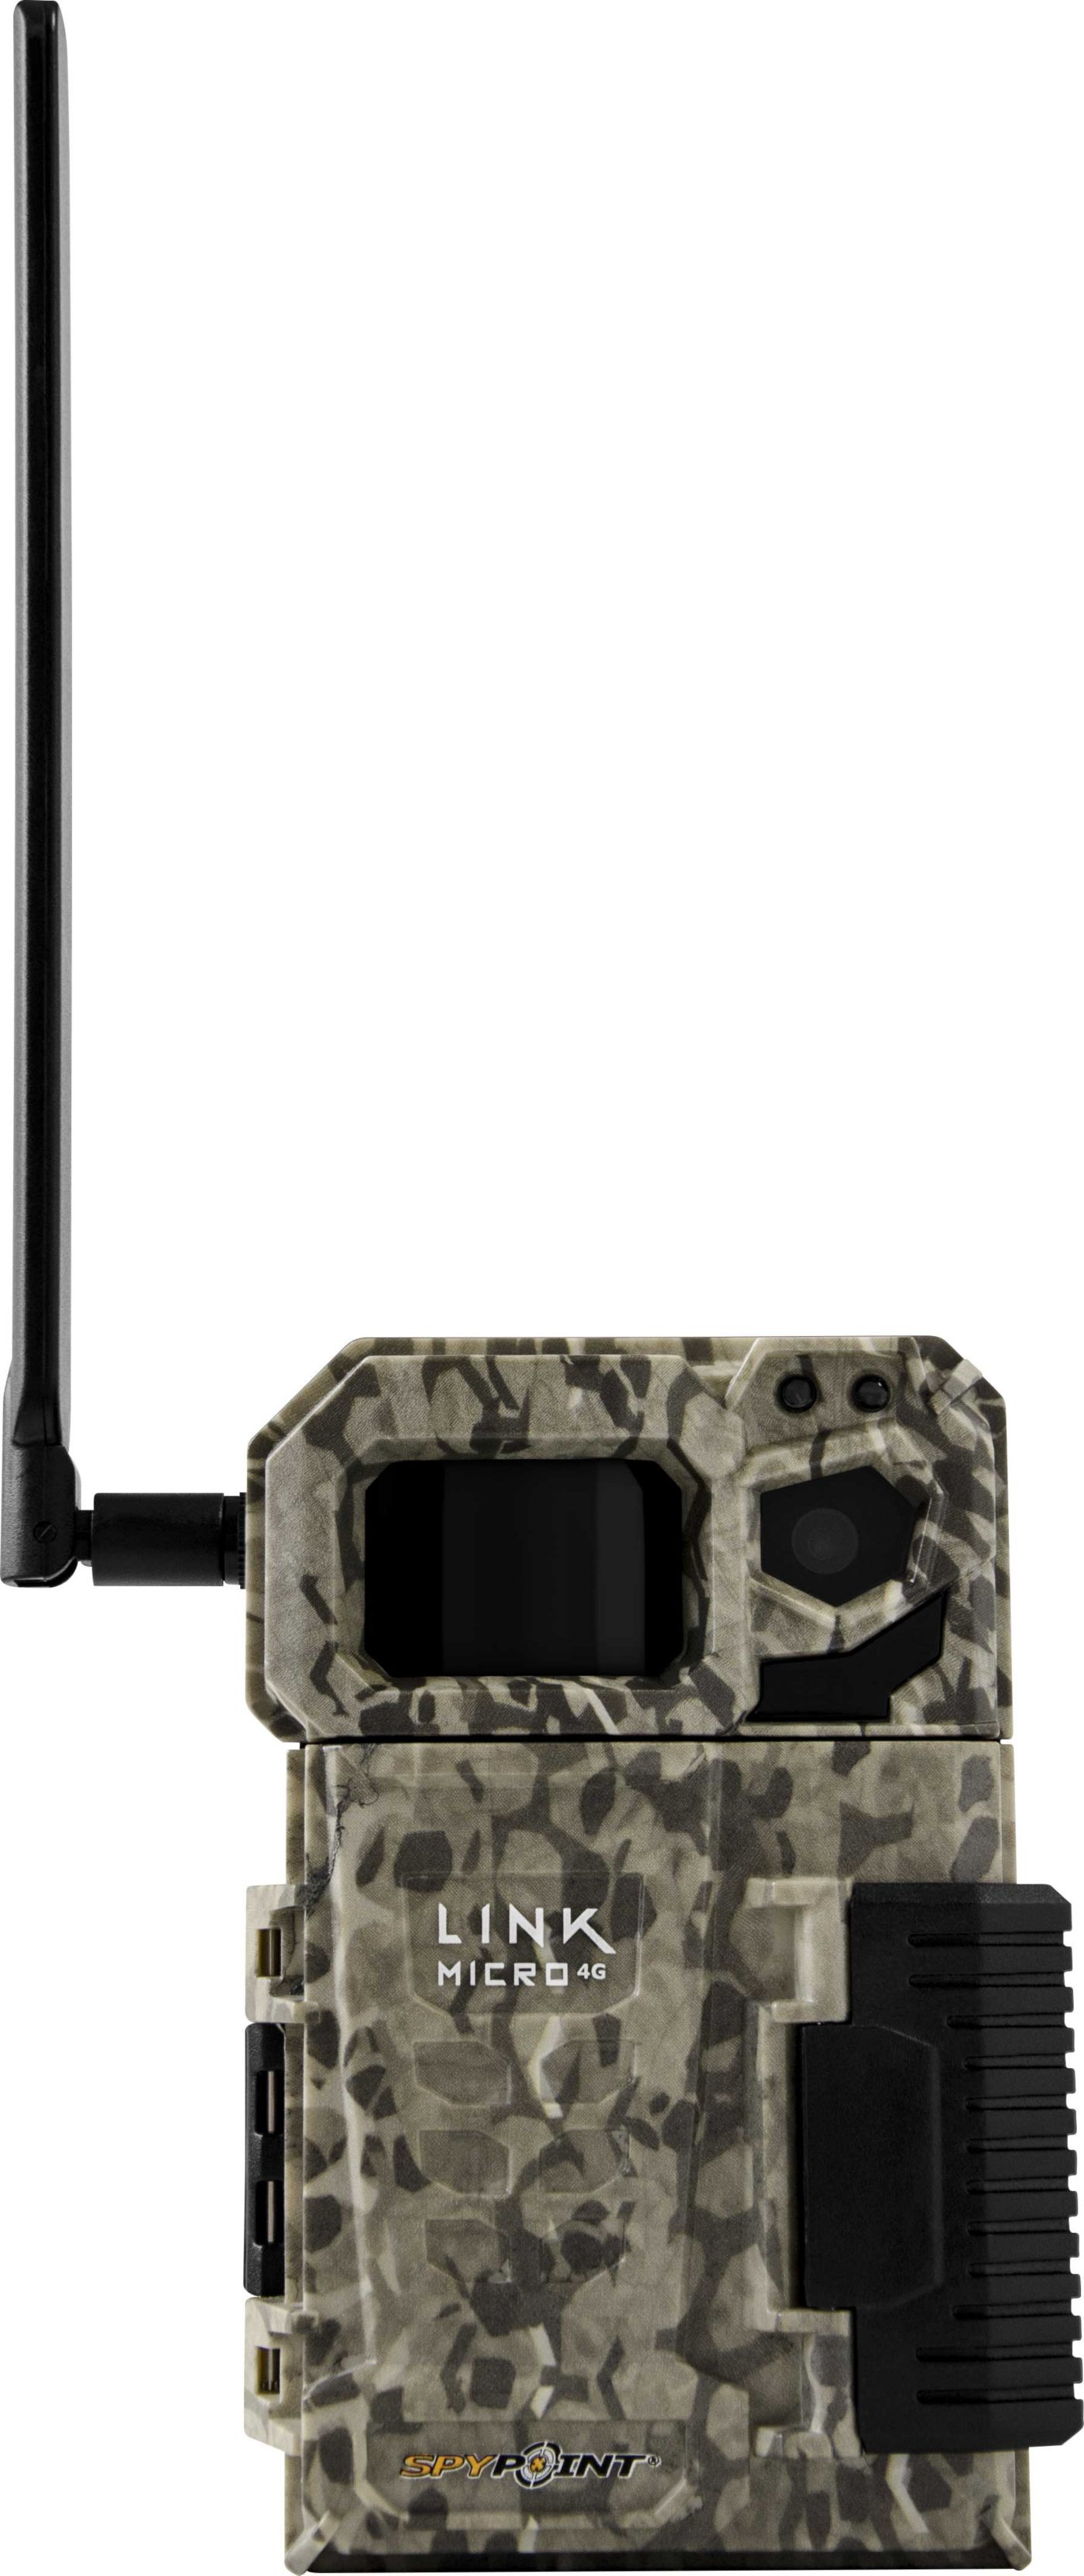 Spypoint LINK-MICRO Cellular Trail Camera – 10MP